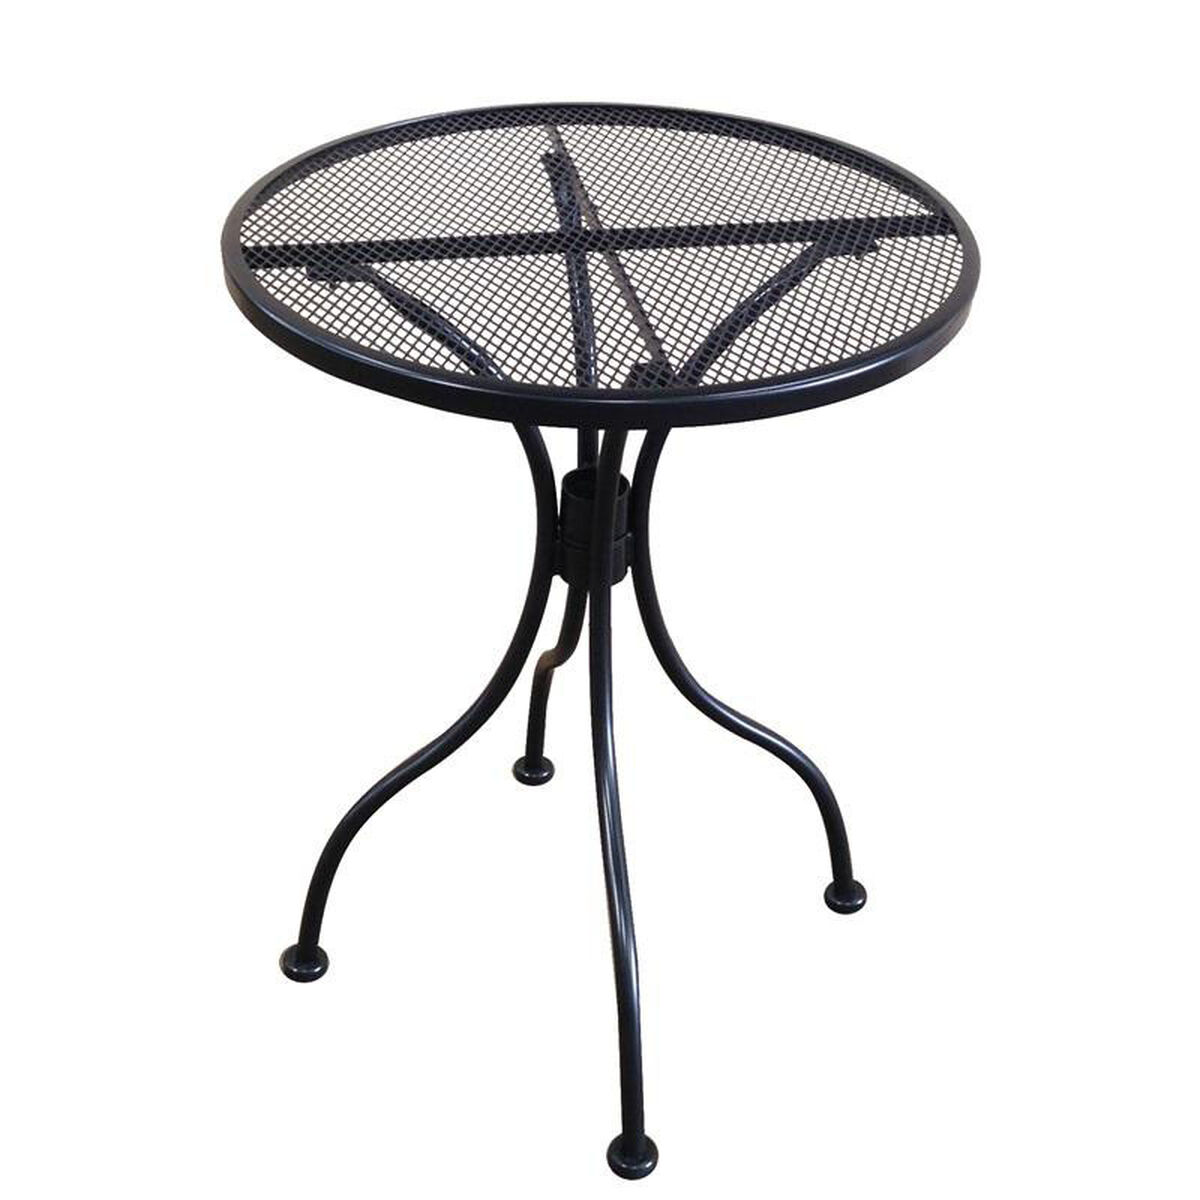 Round Wrought Iron Table MTR RestaurantFurnitureLesscom - Table top for restaurant supply